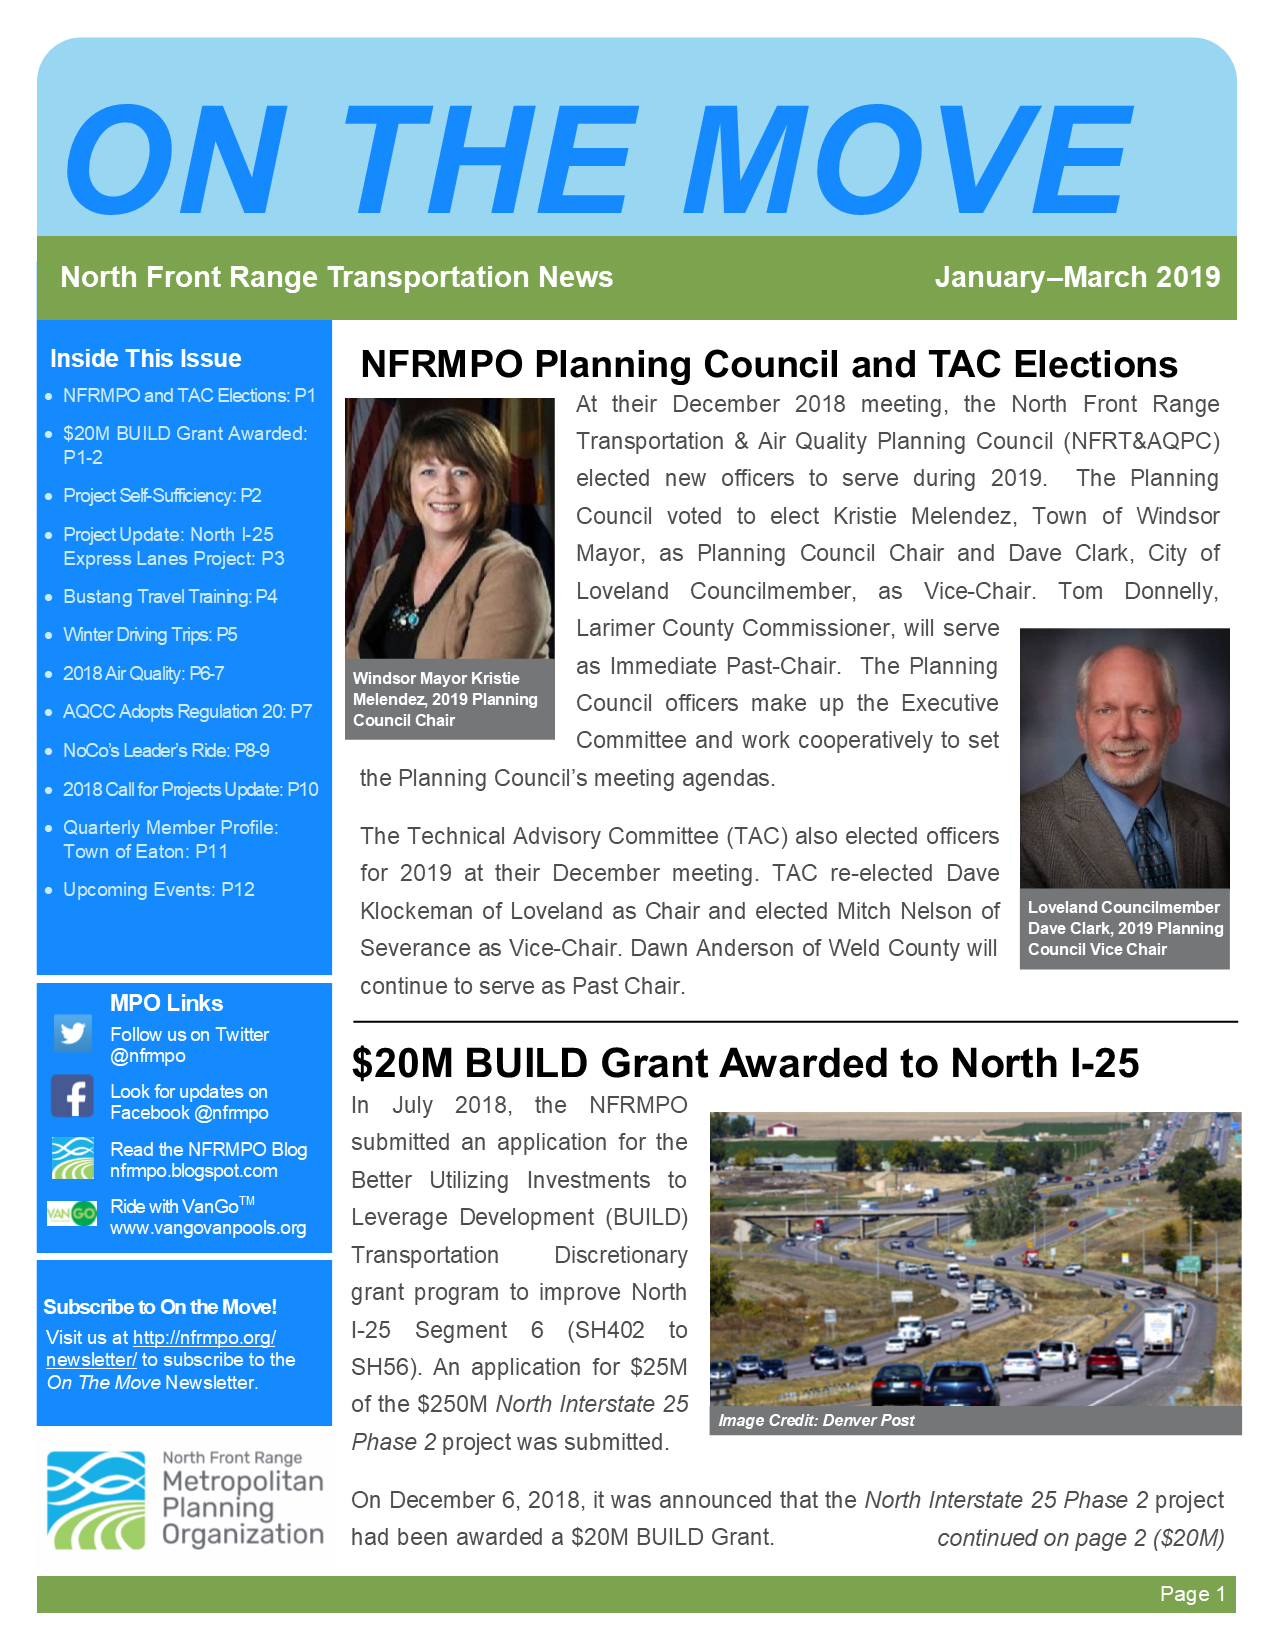 First page of On The Move Newsletter, January-March 2019 edition